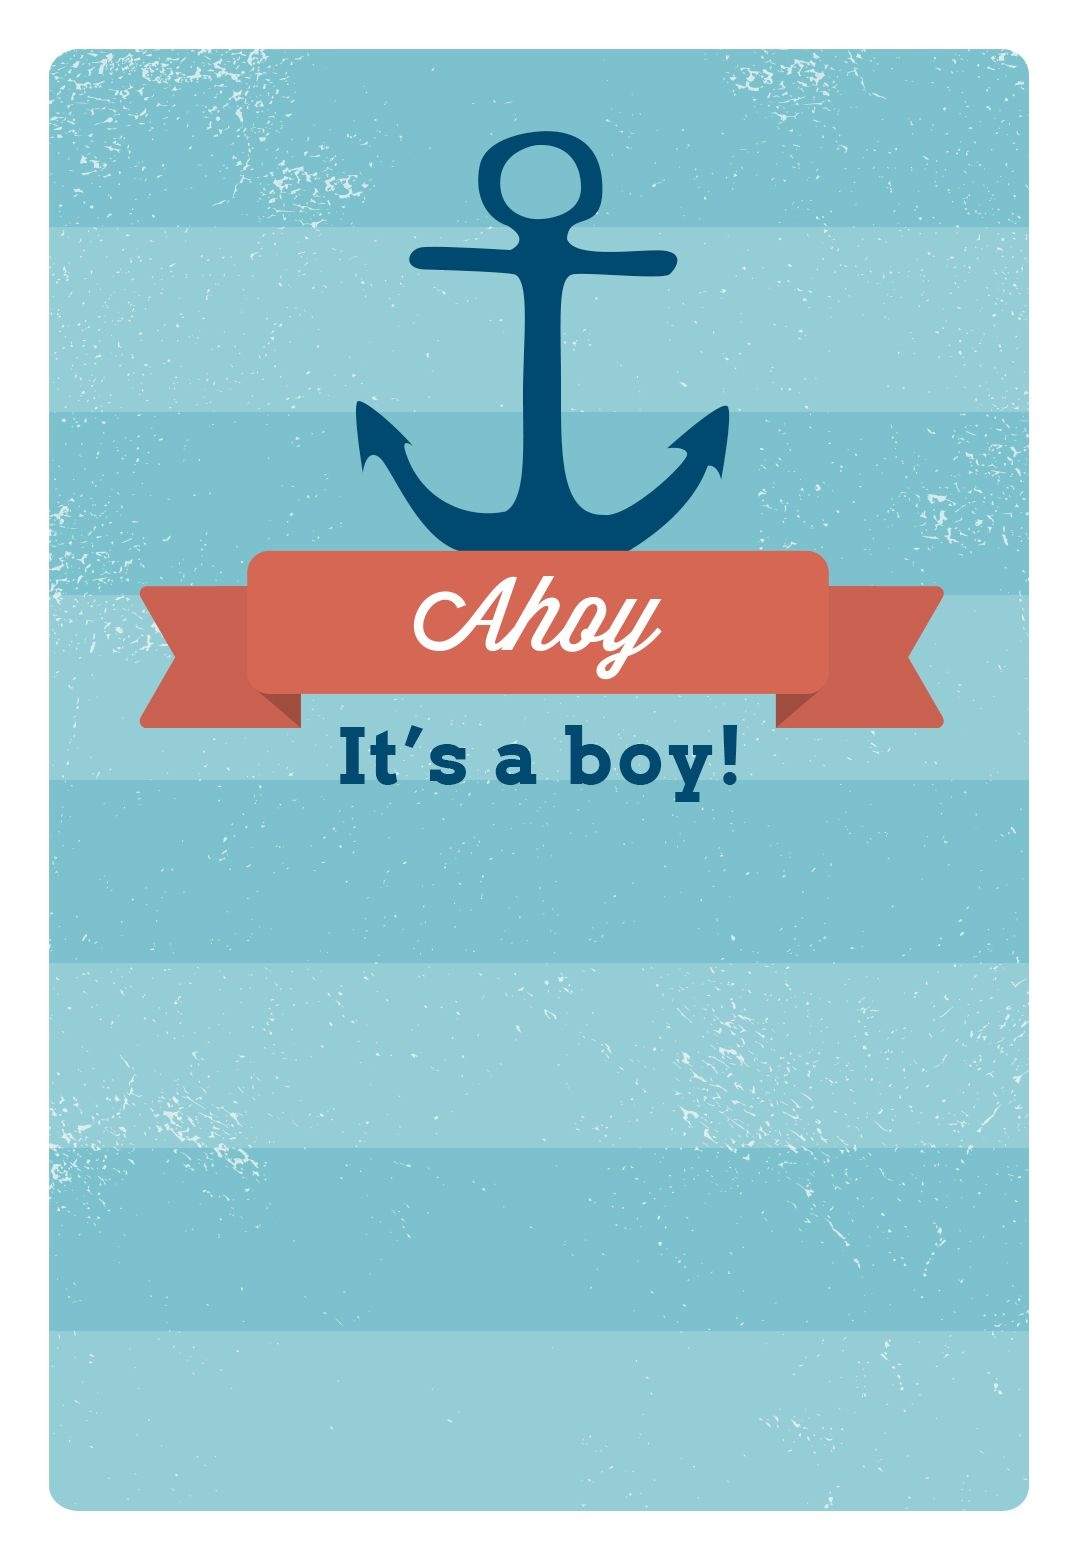 Free Printable Baby Shower Invitation - Ahoy It's A Boy | Greetings - Baby Shower Invitations Free Printable For A Boy